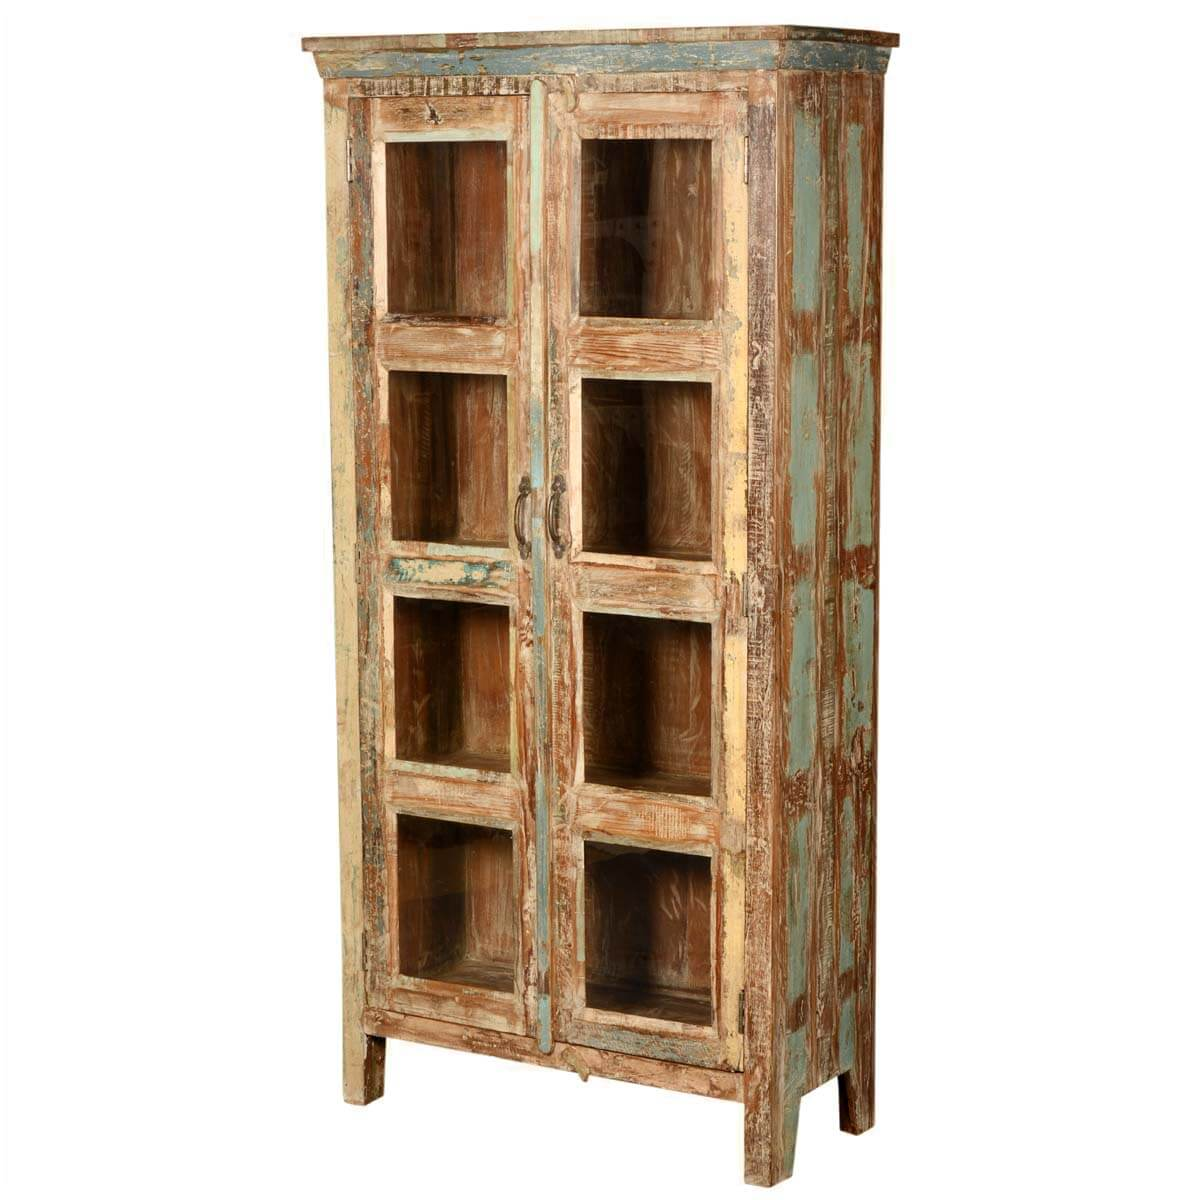 New Memories Reclaimed Wood 8 Window Curio Armoire Cabinet